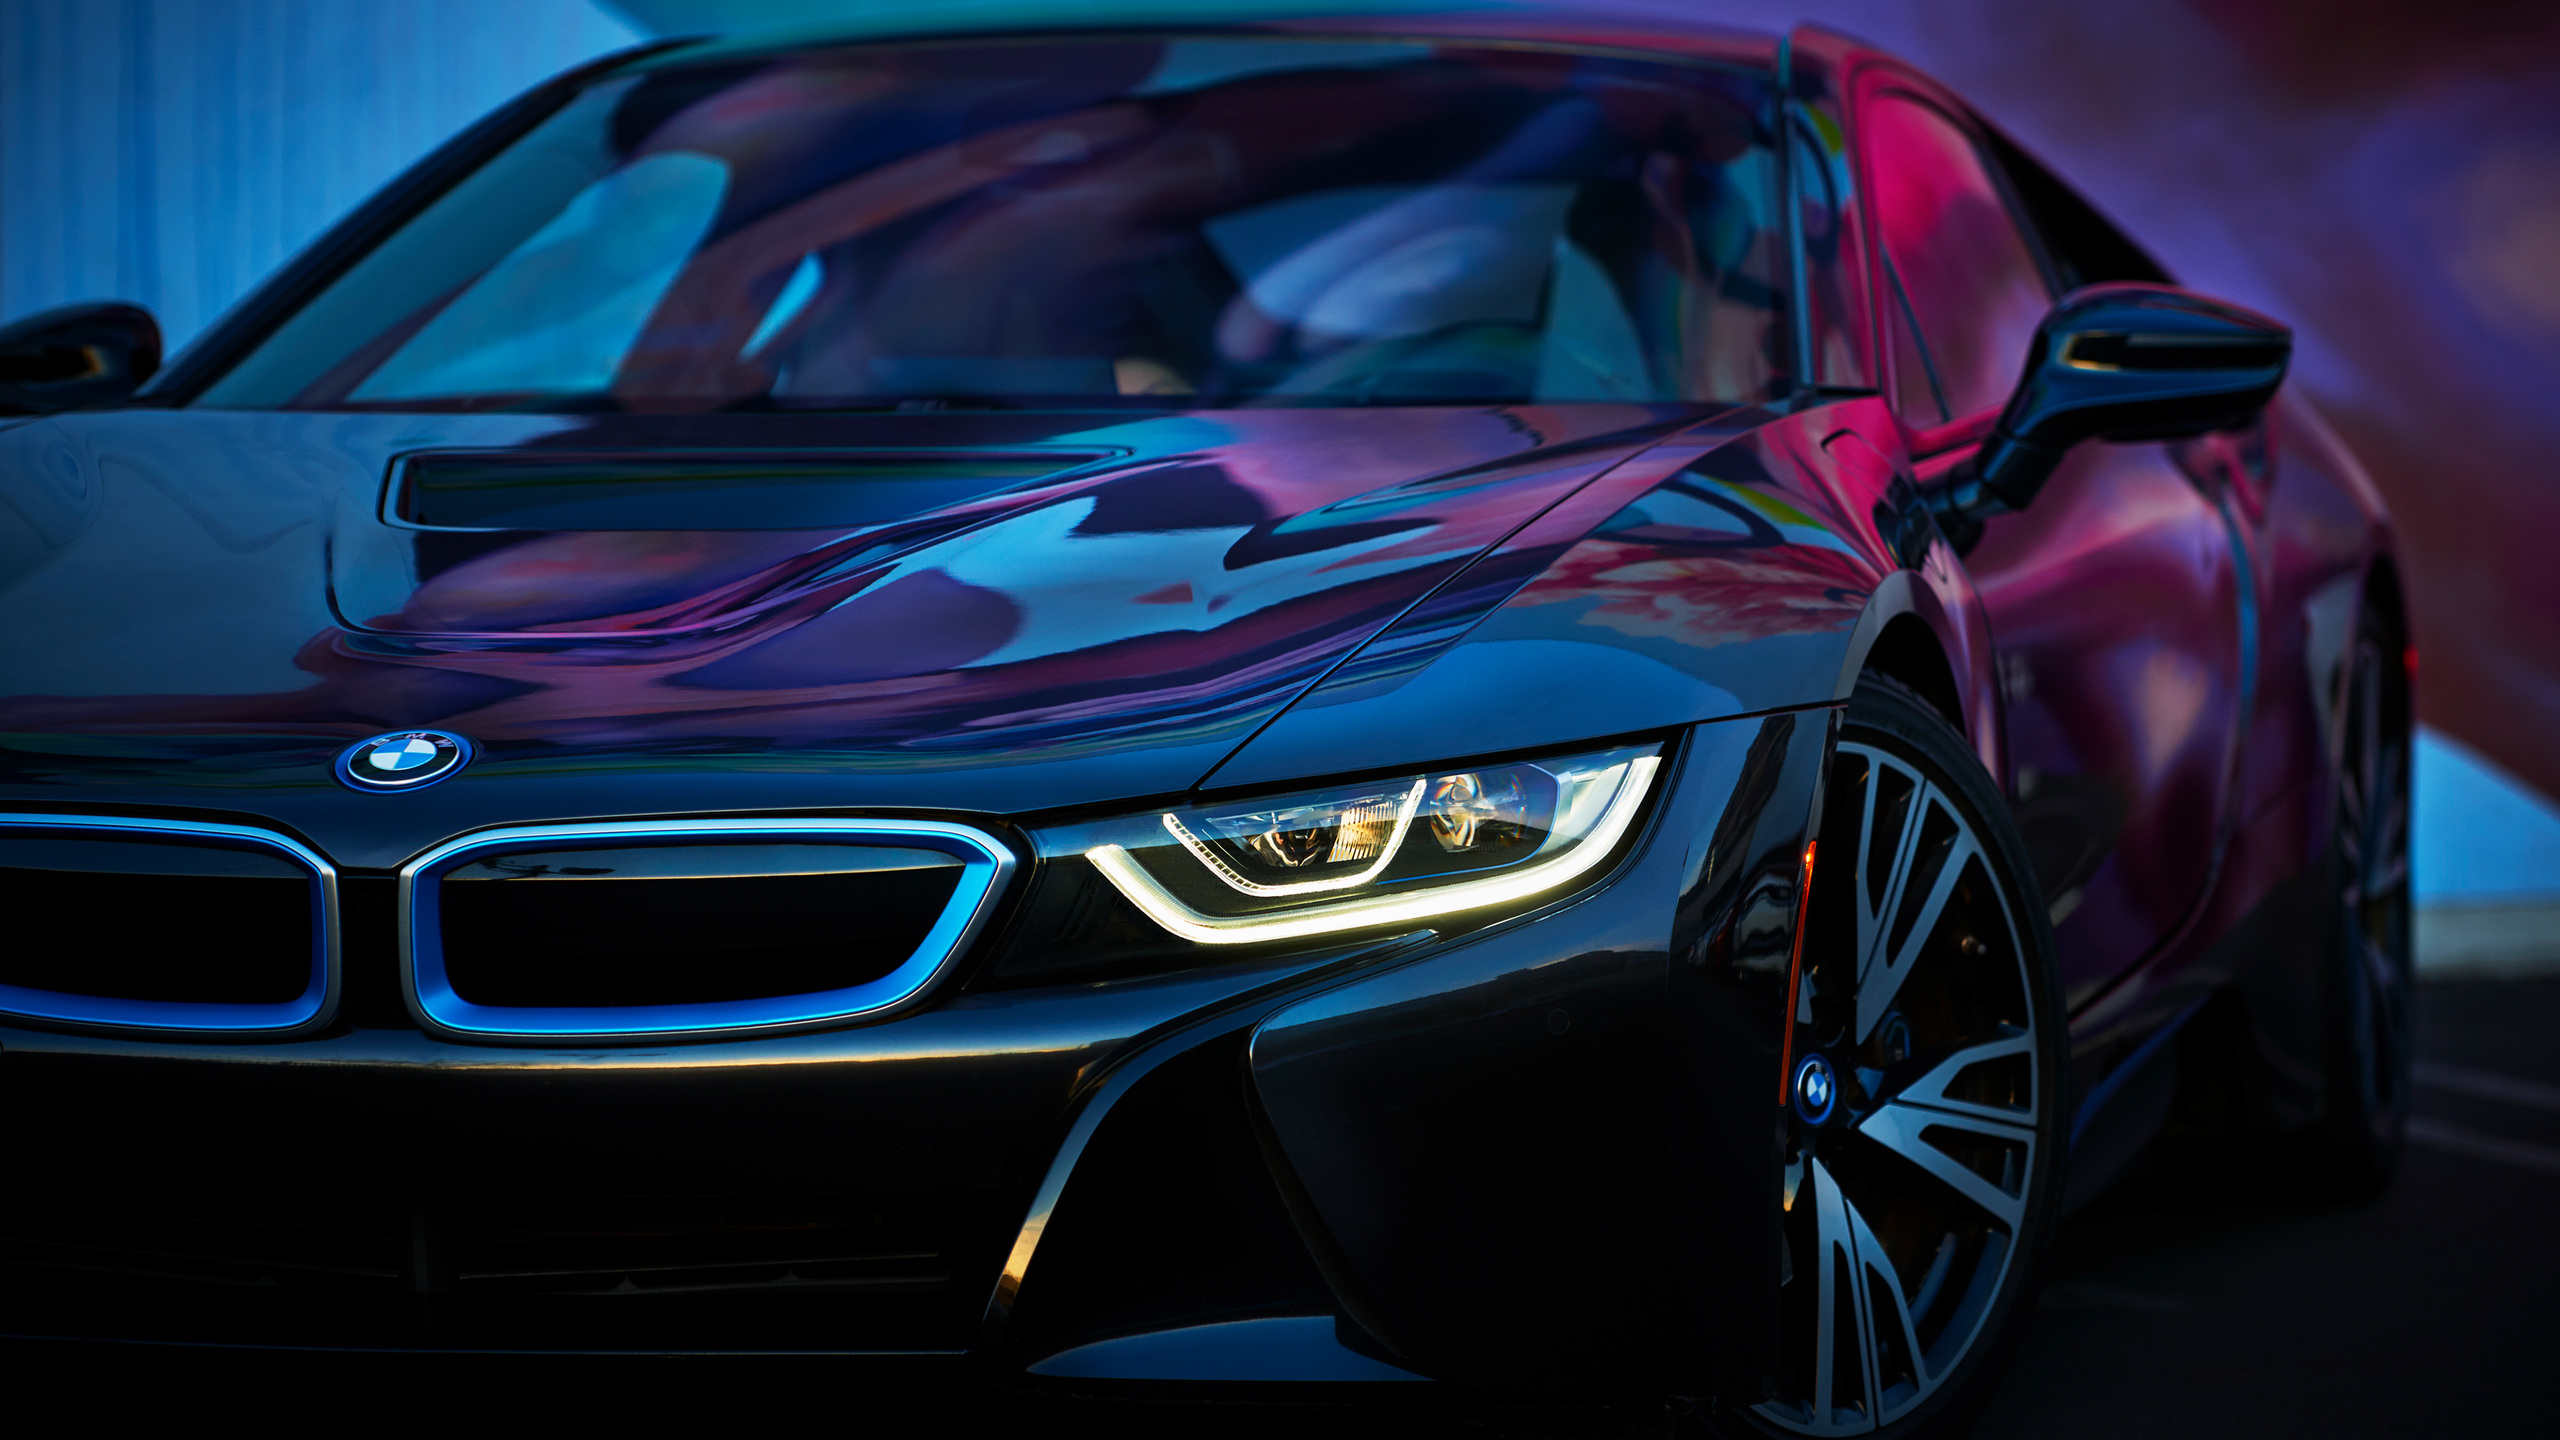 2560x1440 Bmw I8 2018 1440P Resolution HD 4k Wallpapers ...